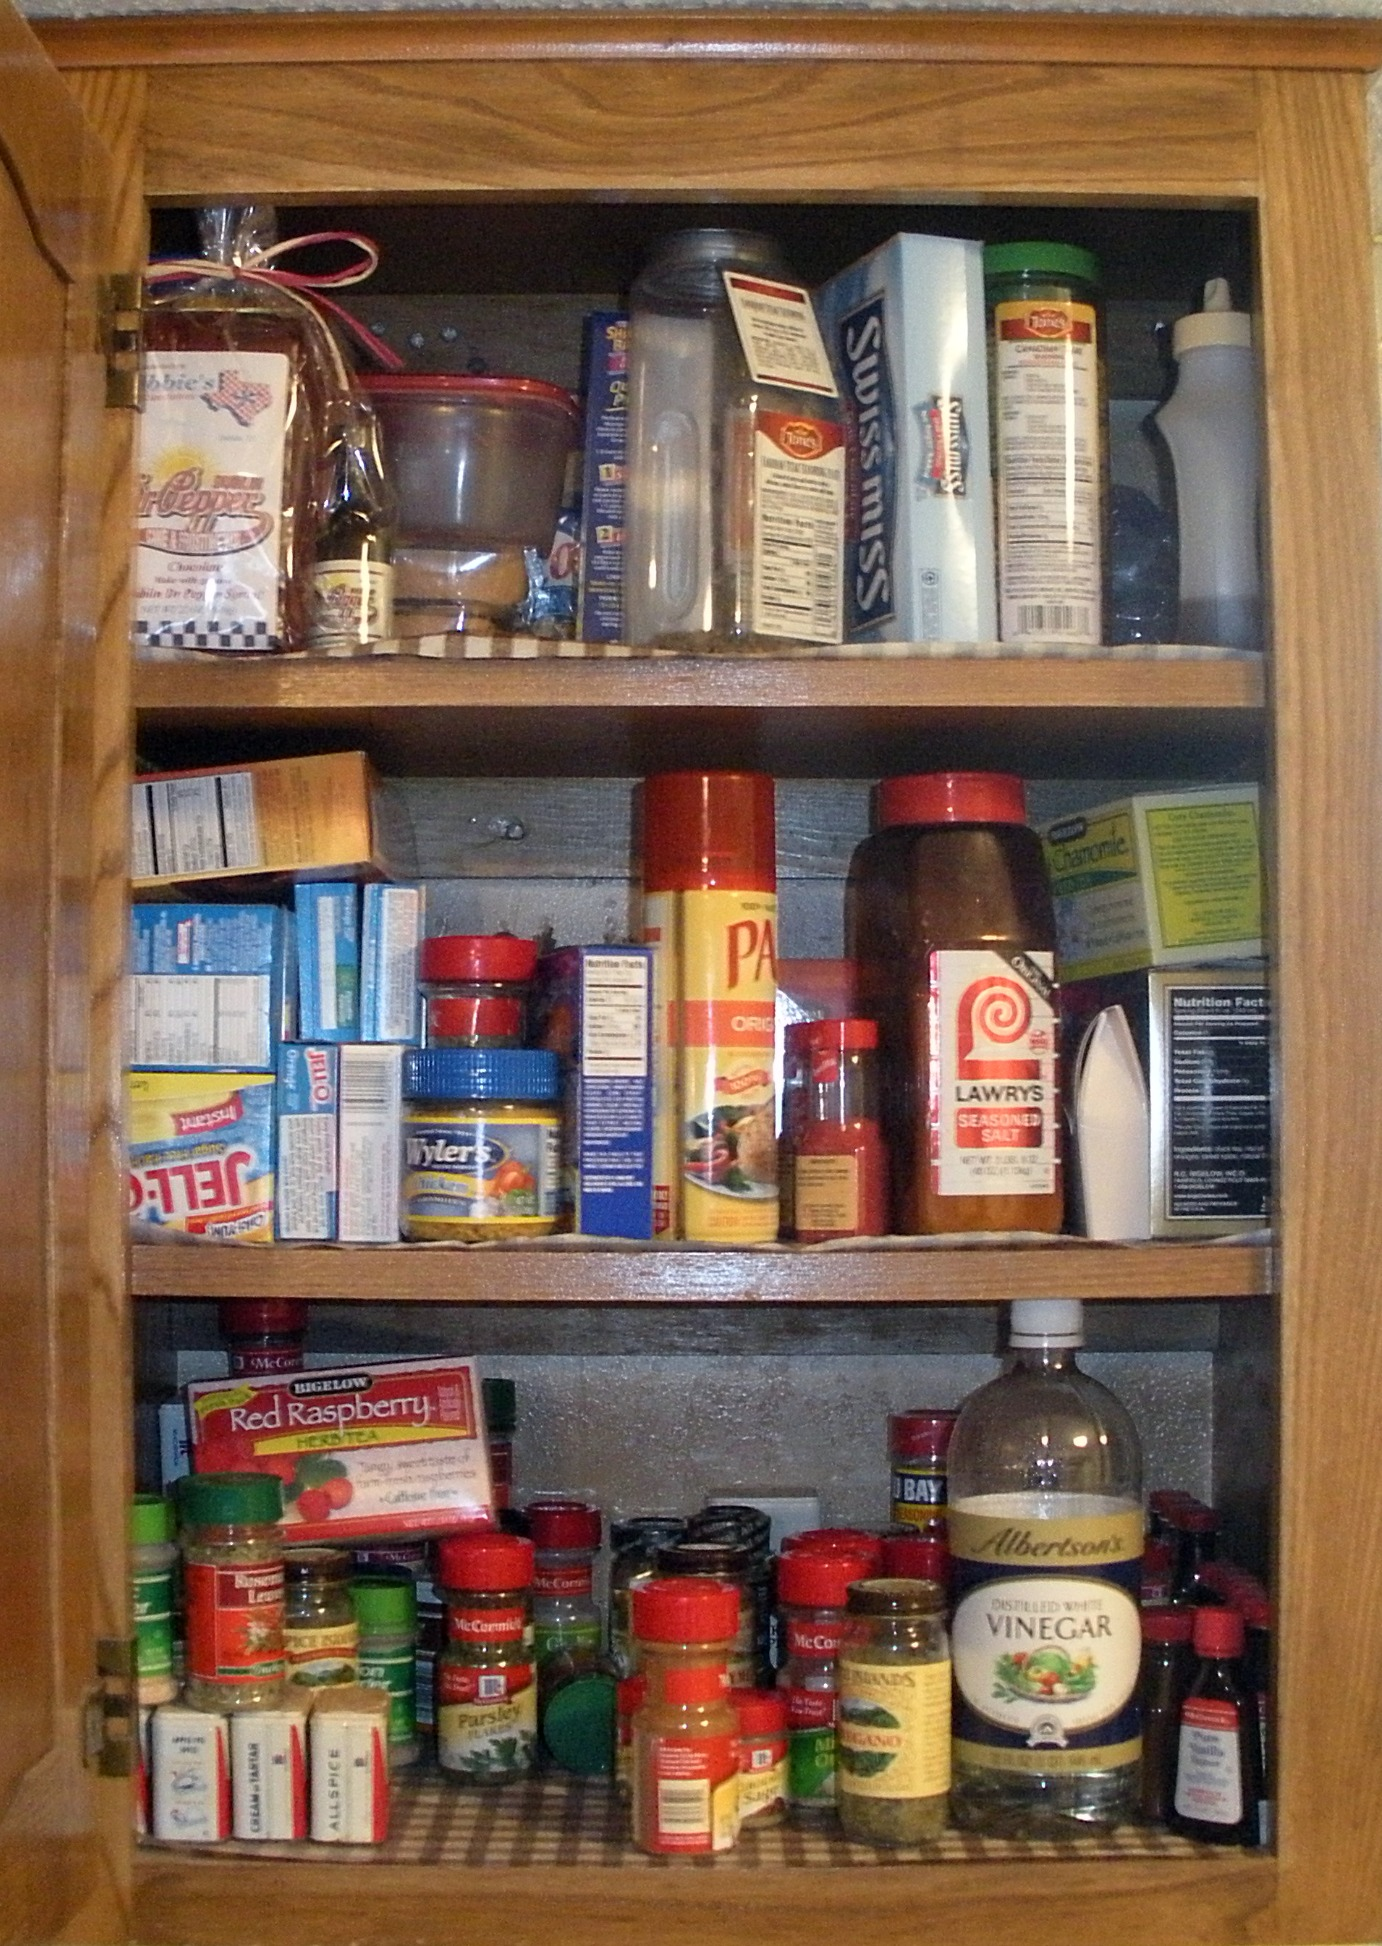 Kitchen cabinet organization products Photo - 12 | Kitchen ideas